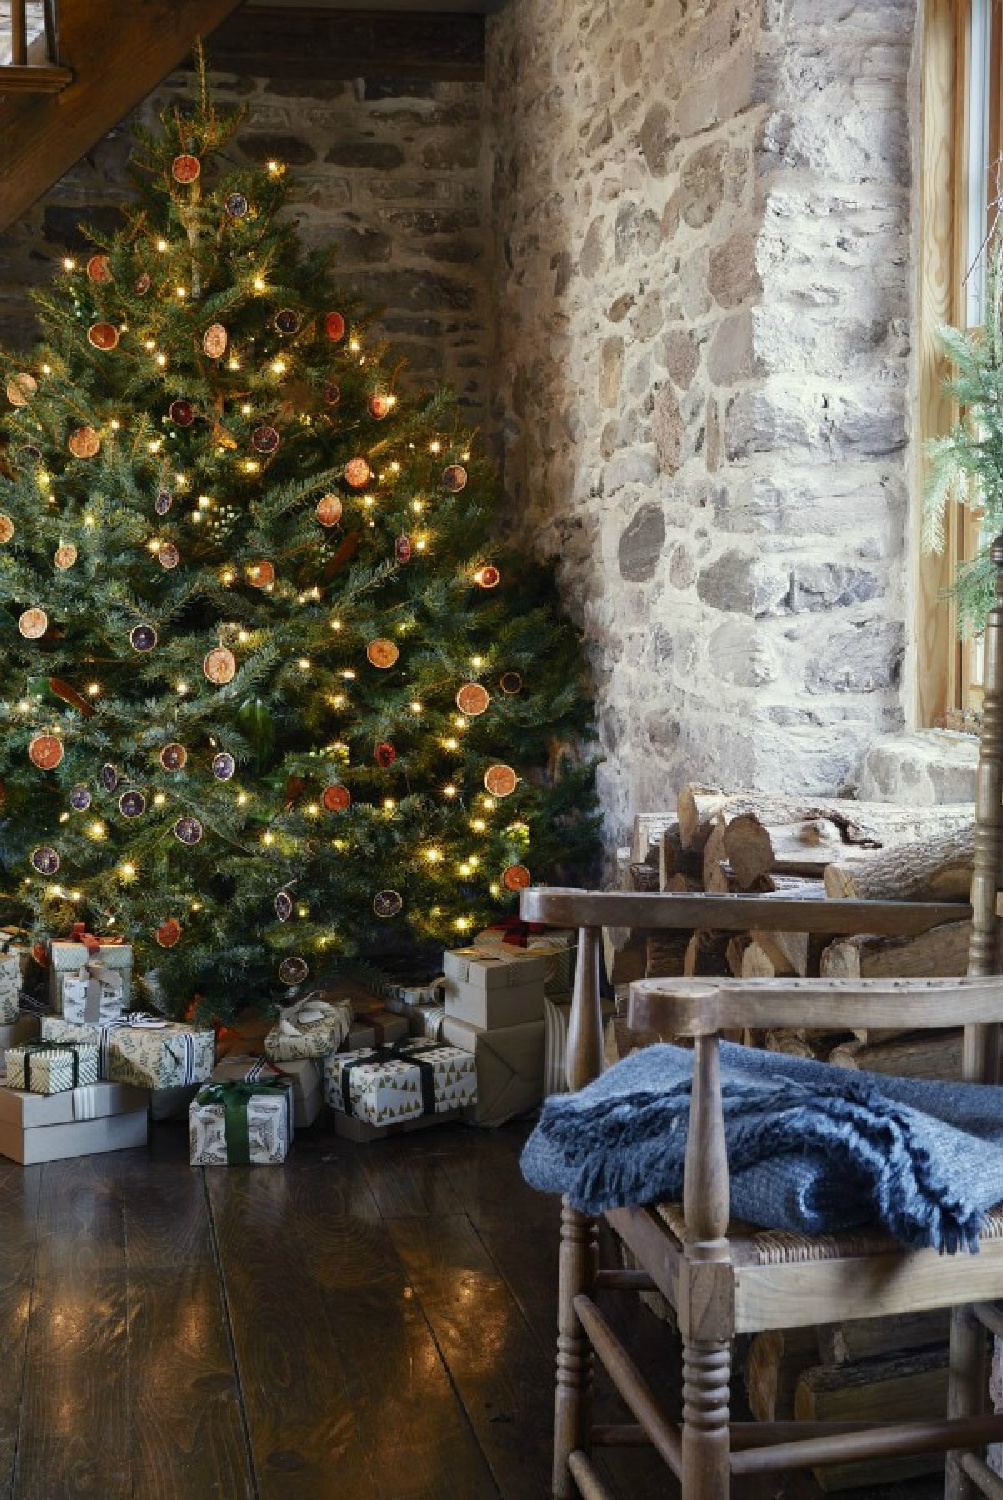 Dried oranges on a Christmas tree in a rustic stone cabin or mountain lodge - Country Living. #countrychristmas #mountainchristmas #scandichristmas #driedcitrus #garlands #countrychristmas